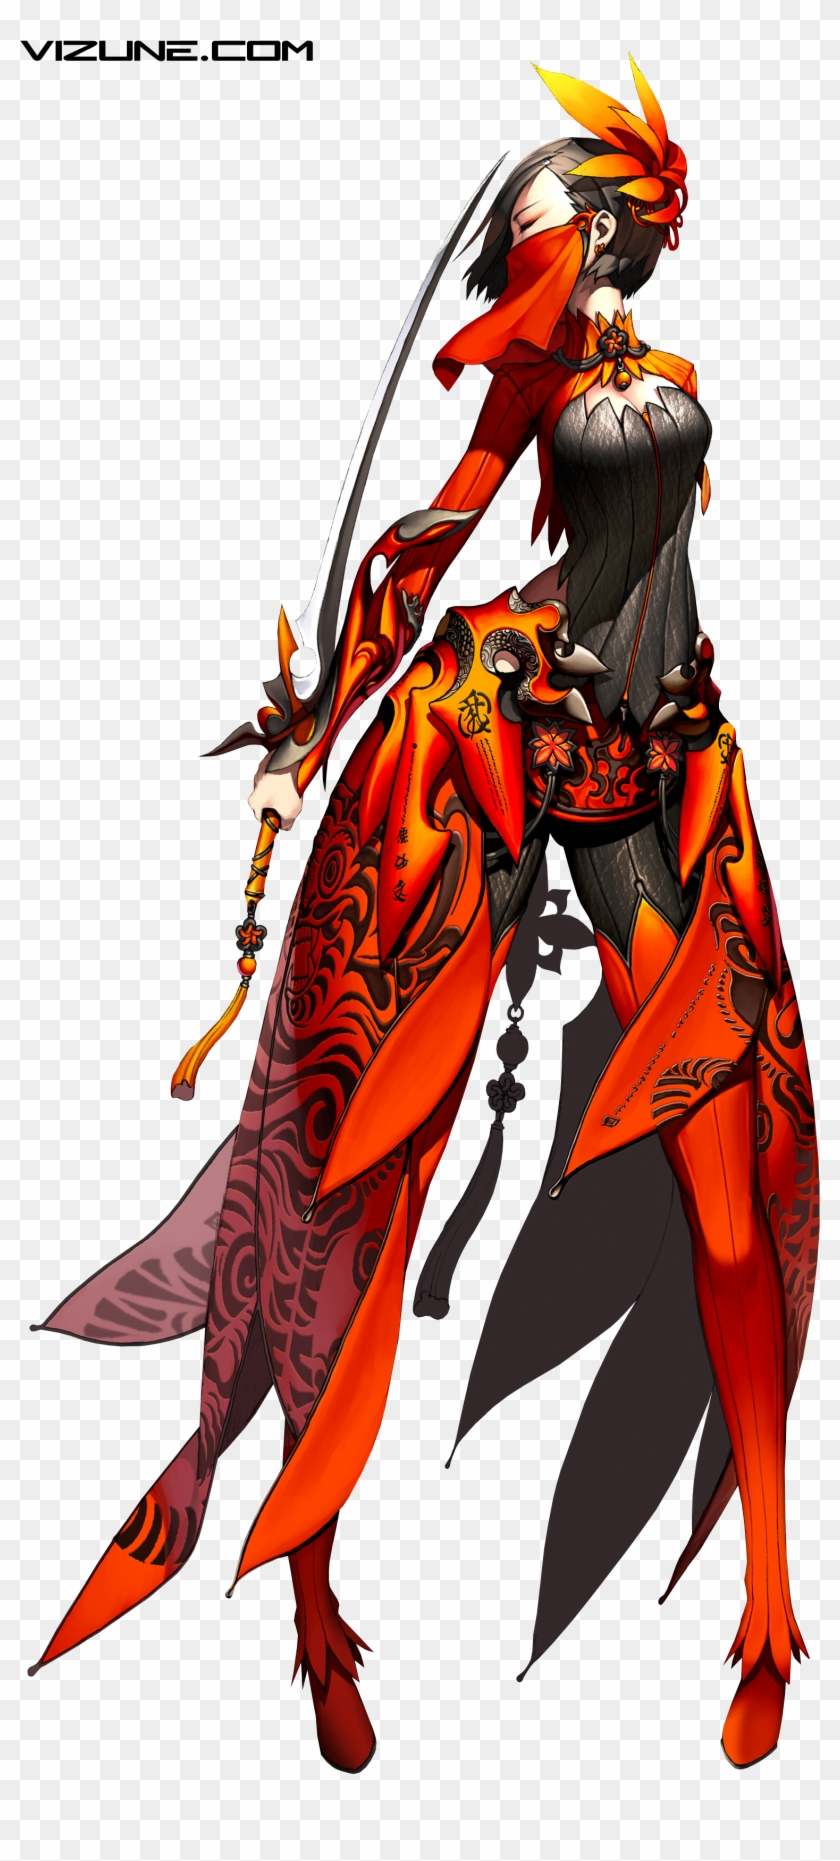 Or - Blade & Soul Png, Transparent Png - 1649x3407 (#1326855